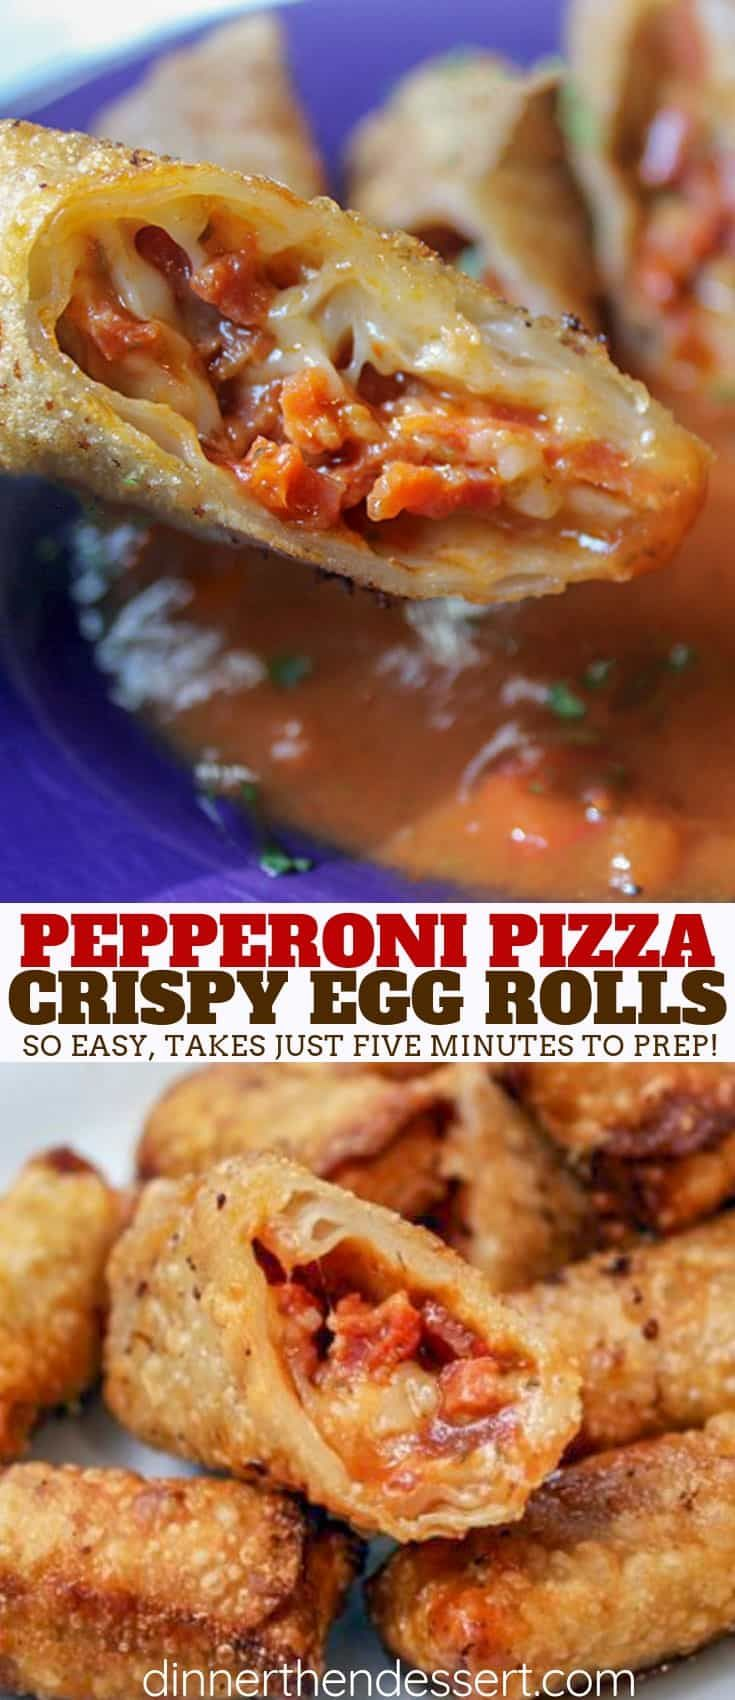 Pepperoni Pizza Egg Rolls are the perfect party appetizer or after school treat your family and friends will love and they take just a few minutes to prepare